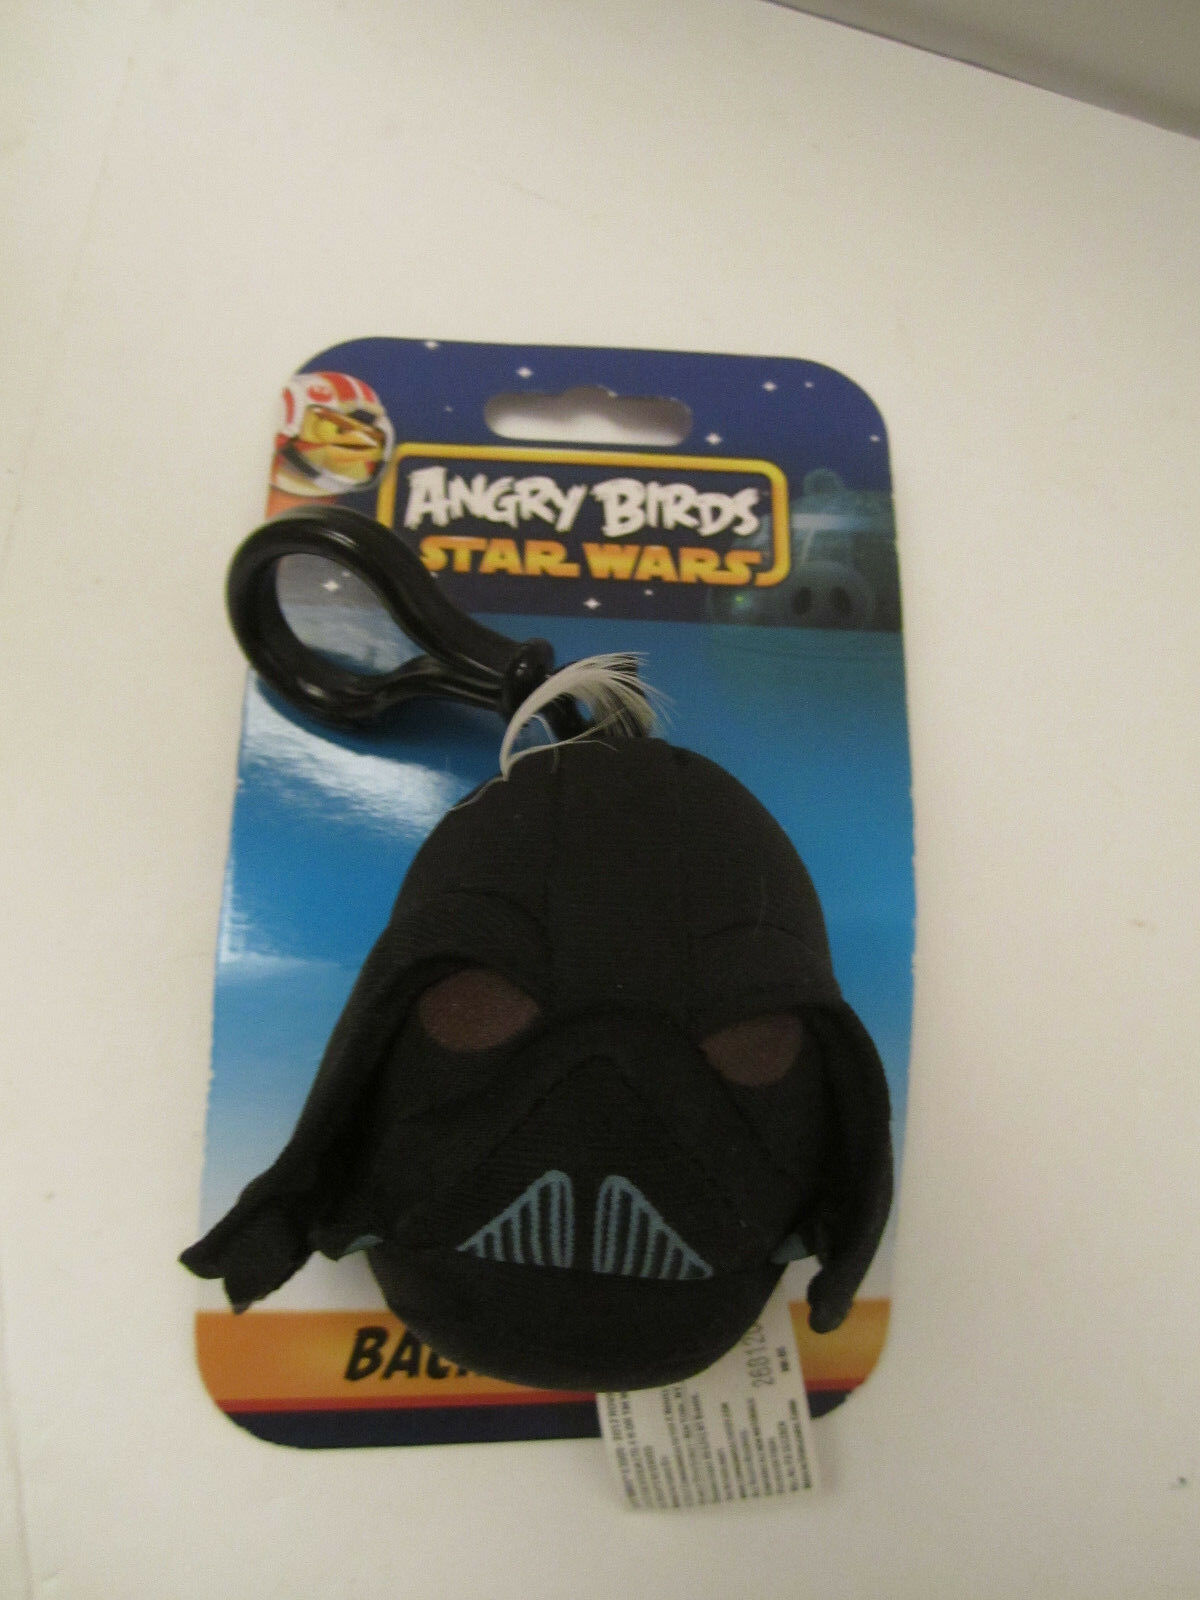 Angry Bird Star Wars Plush Stormtrooper Pig + Darth Vader Clip NM PRE-OWNED image 3